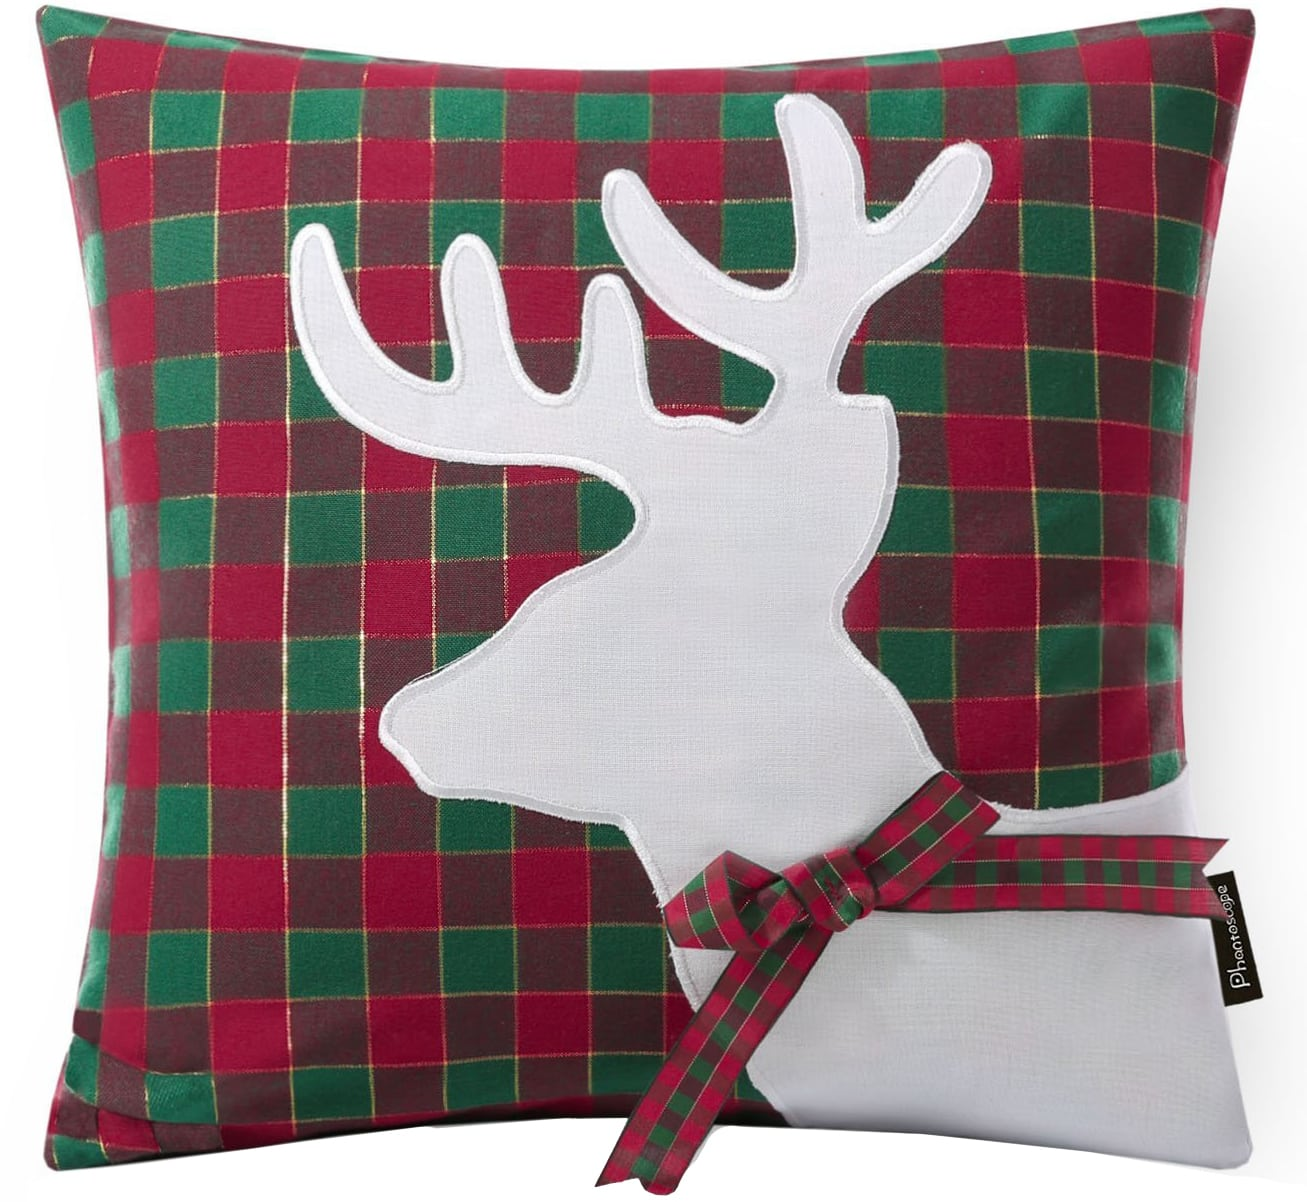 reindeer christmas pillow cover & 30 Christmas Pillow Covers for Under $13! - Holiday Pillow Covers pillowsntoast.com